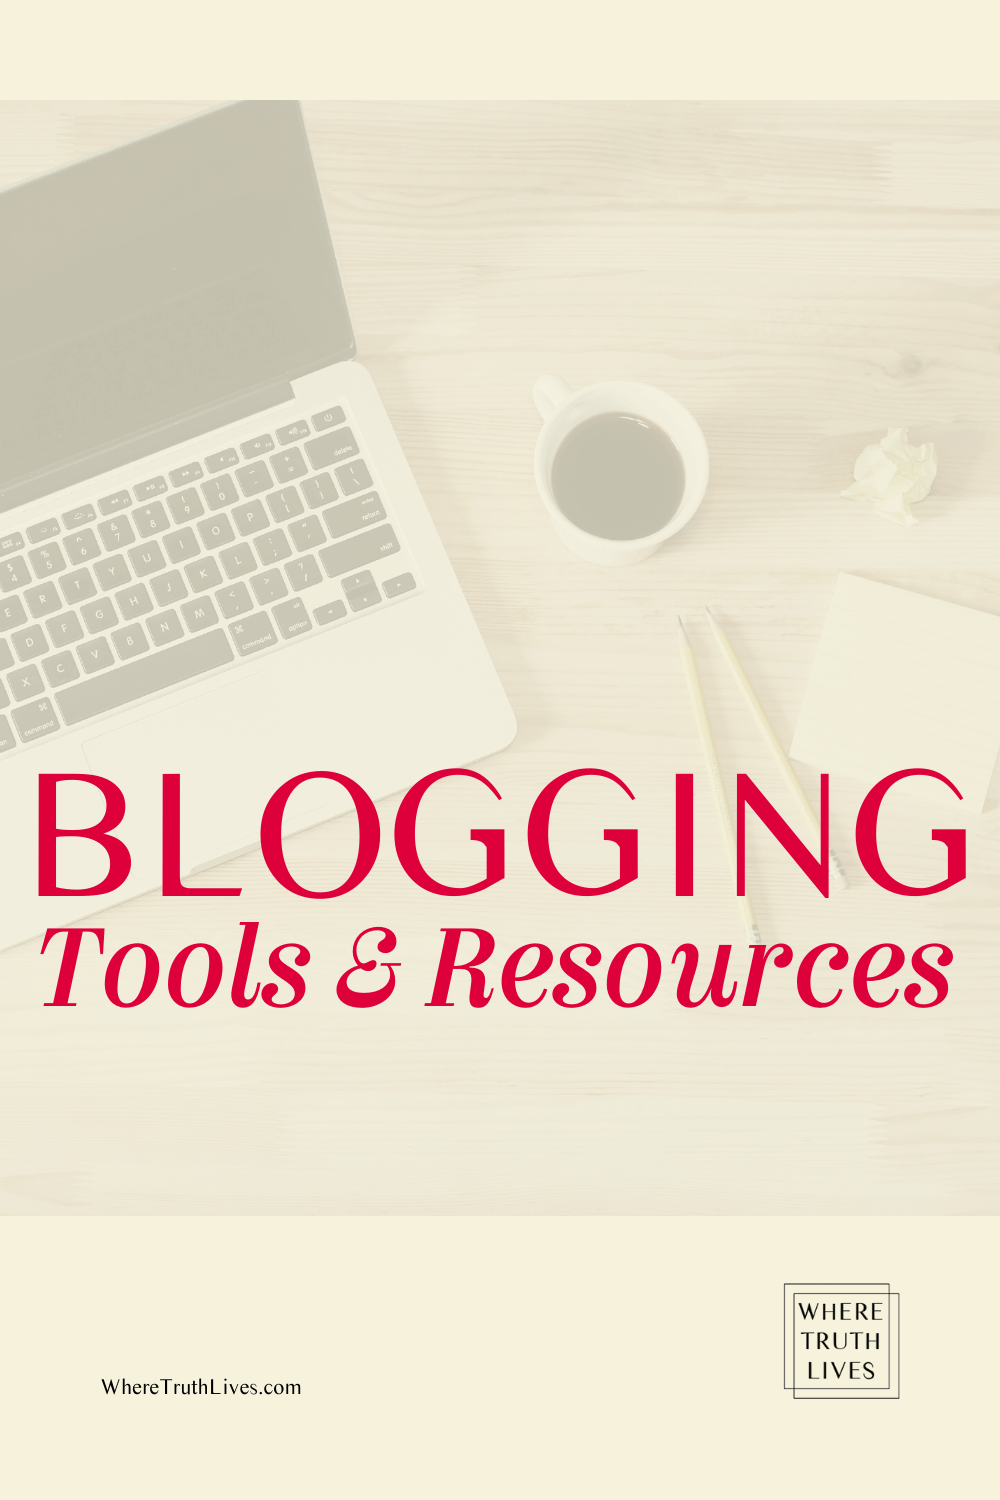 Blogging tools and resources recommended for bloggers of all stages by WhereTruthLives.com